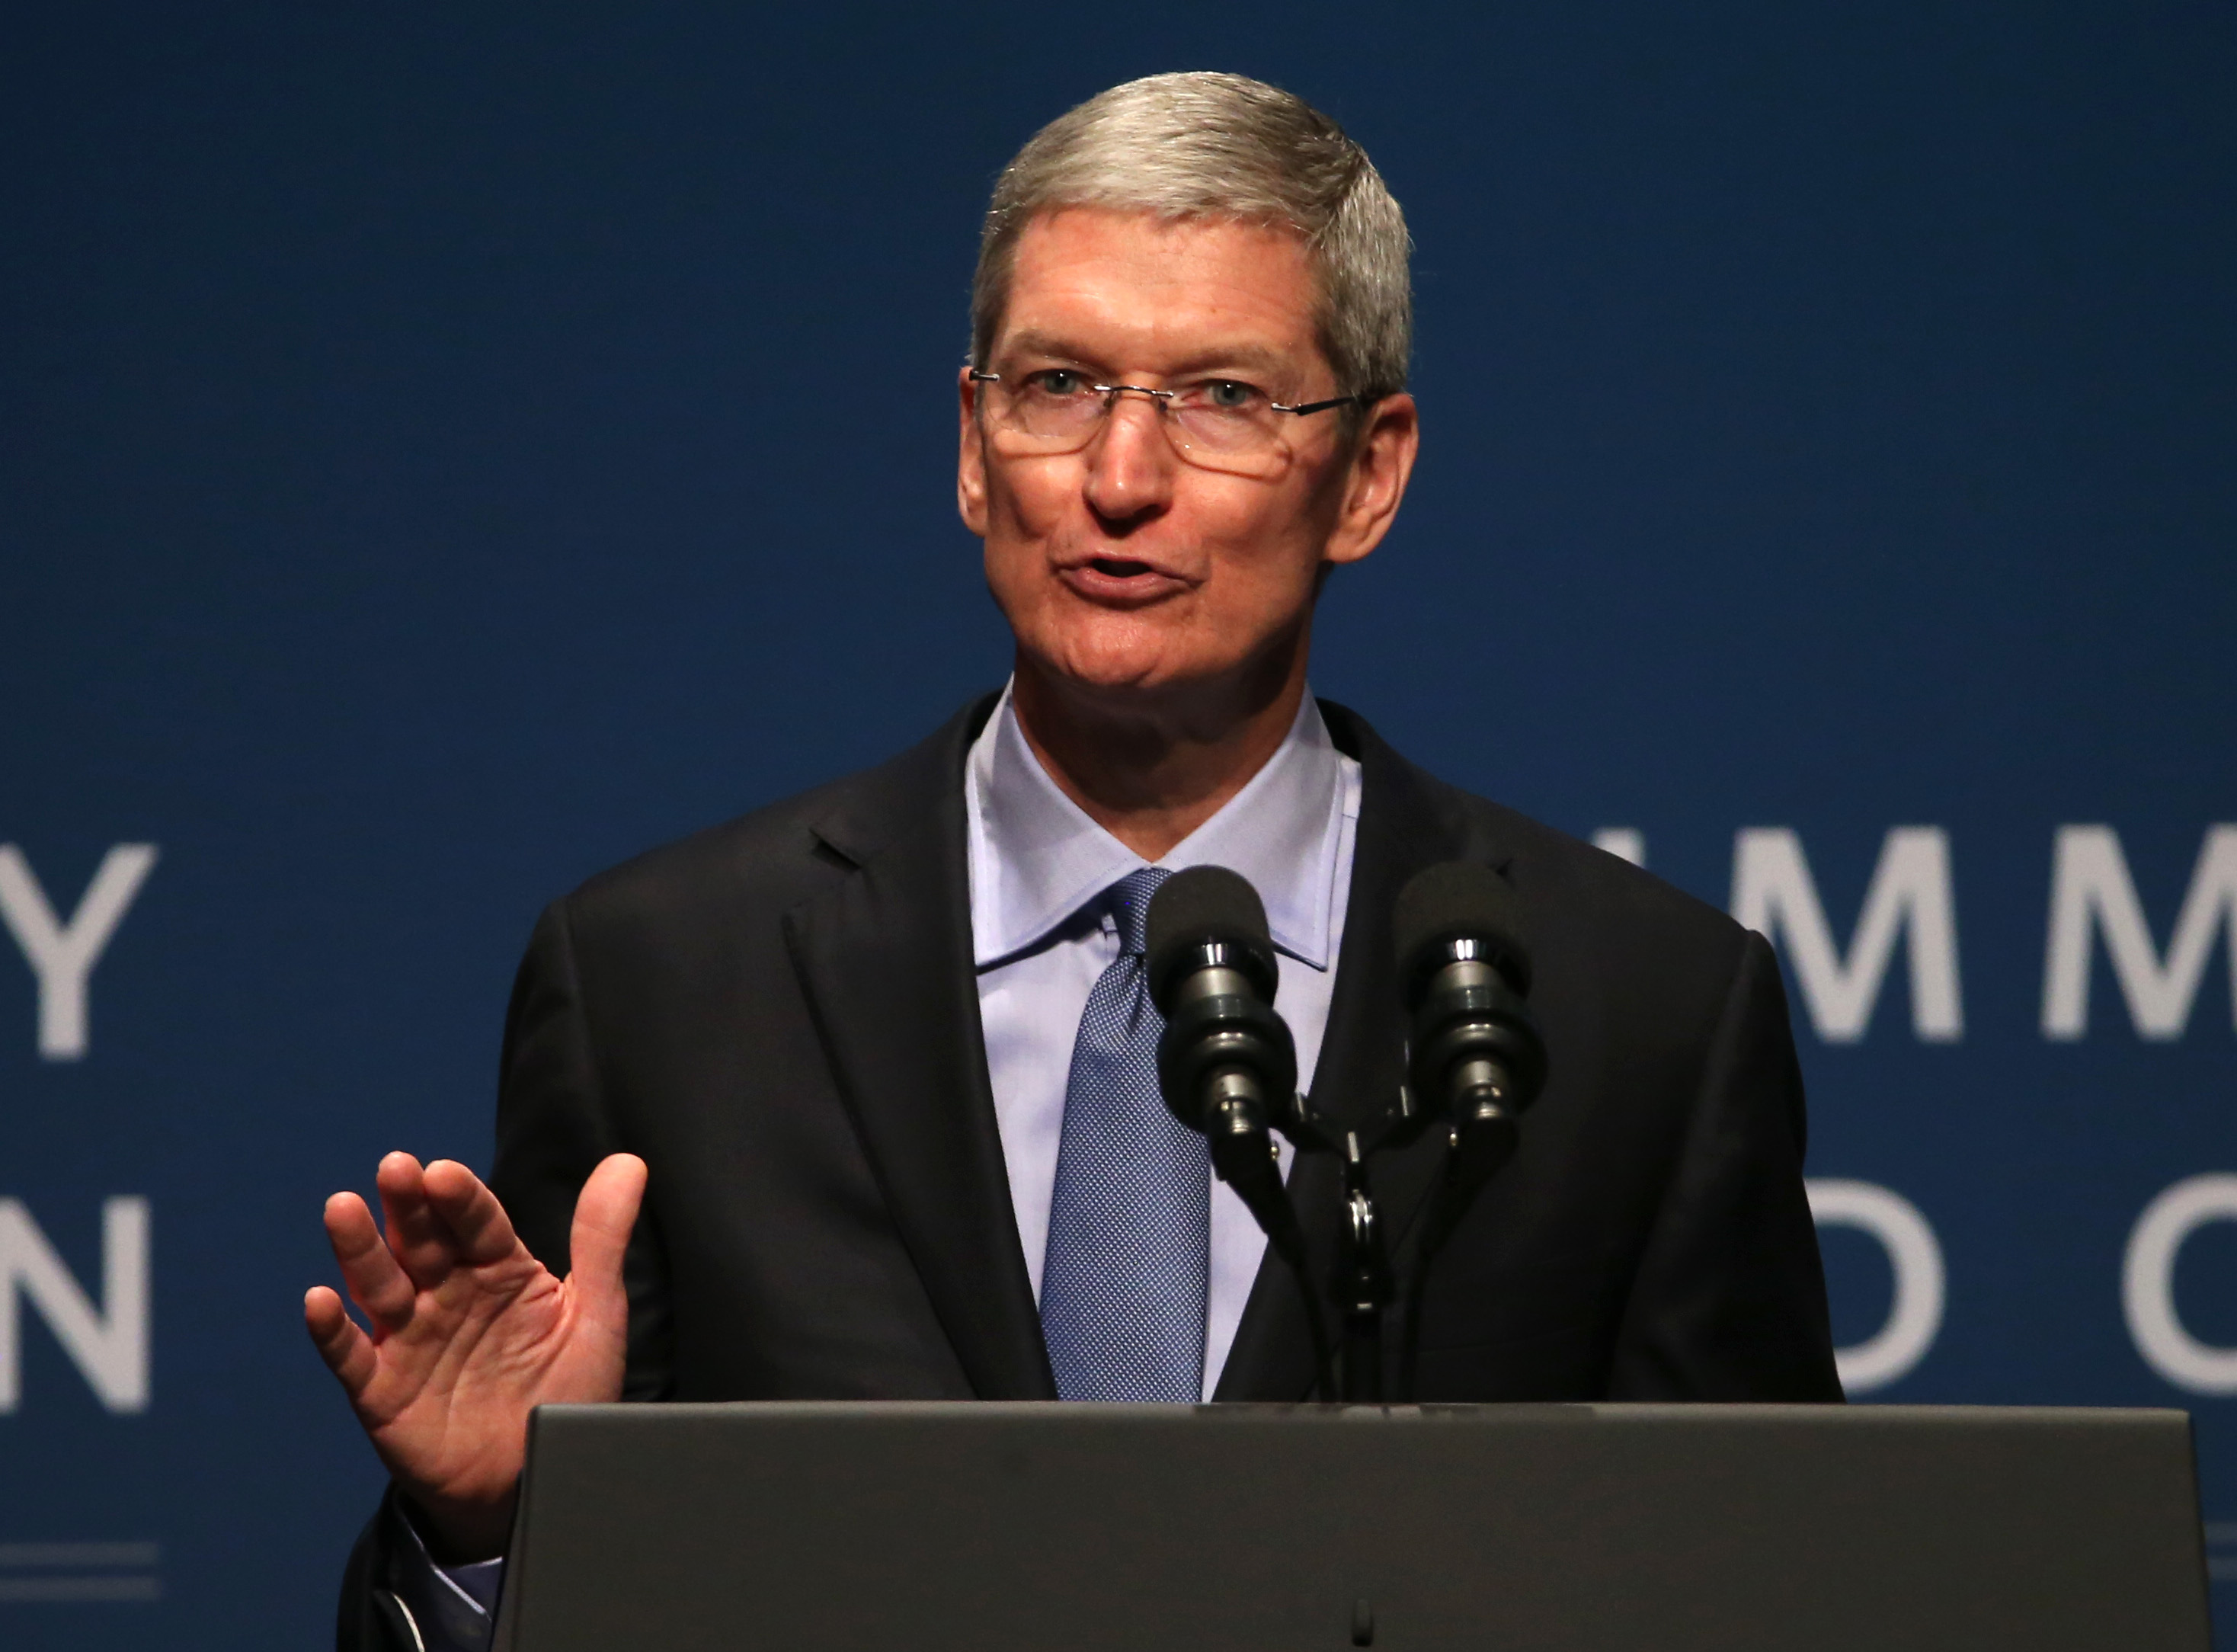 Apple CEO Tim Cook speaks during the White House Summit on Cybersecurity and Consumer Protection in Stanford, Calif. on Feb. 13, 2015.